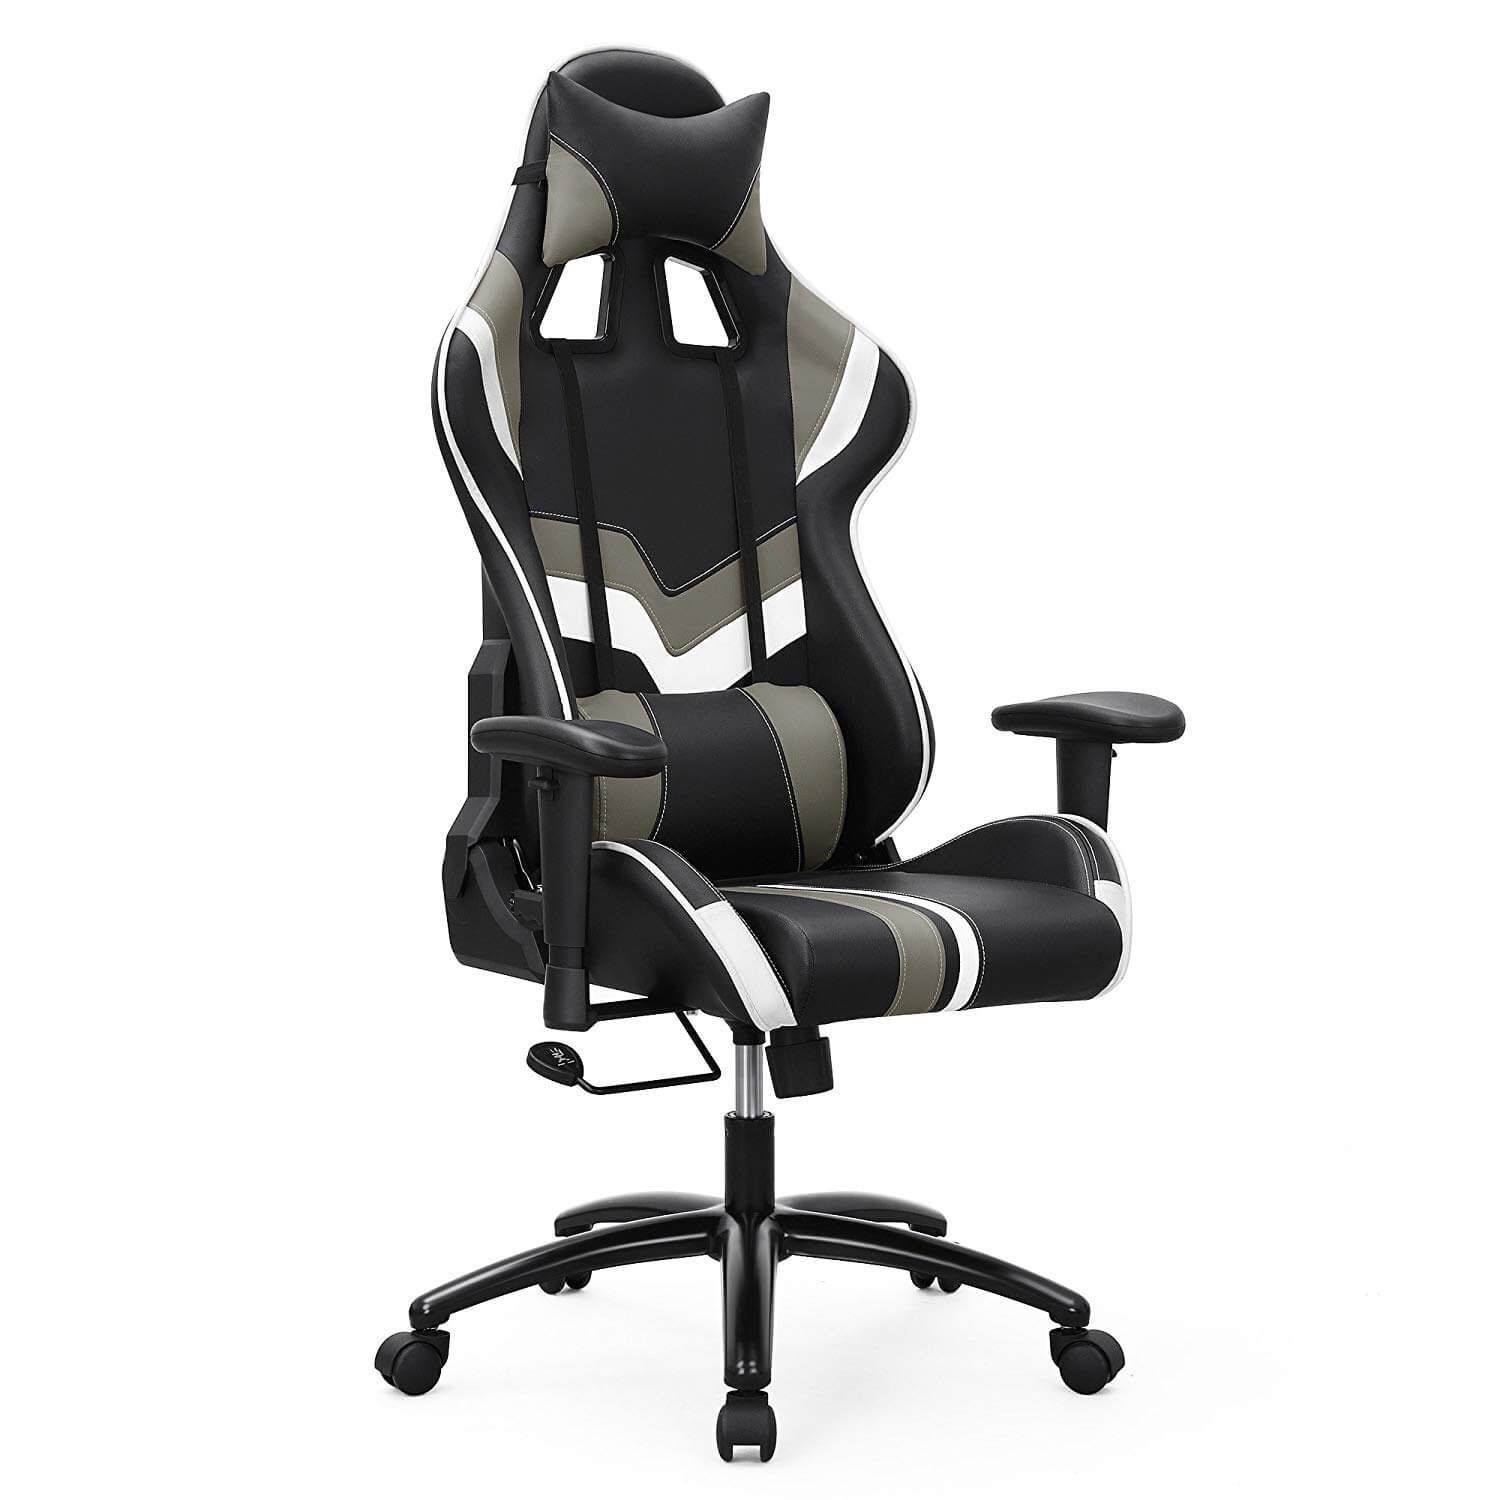 Songmics office chair gaming chair executive chair with armrests